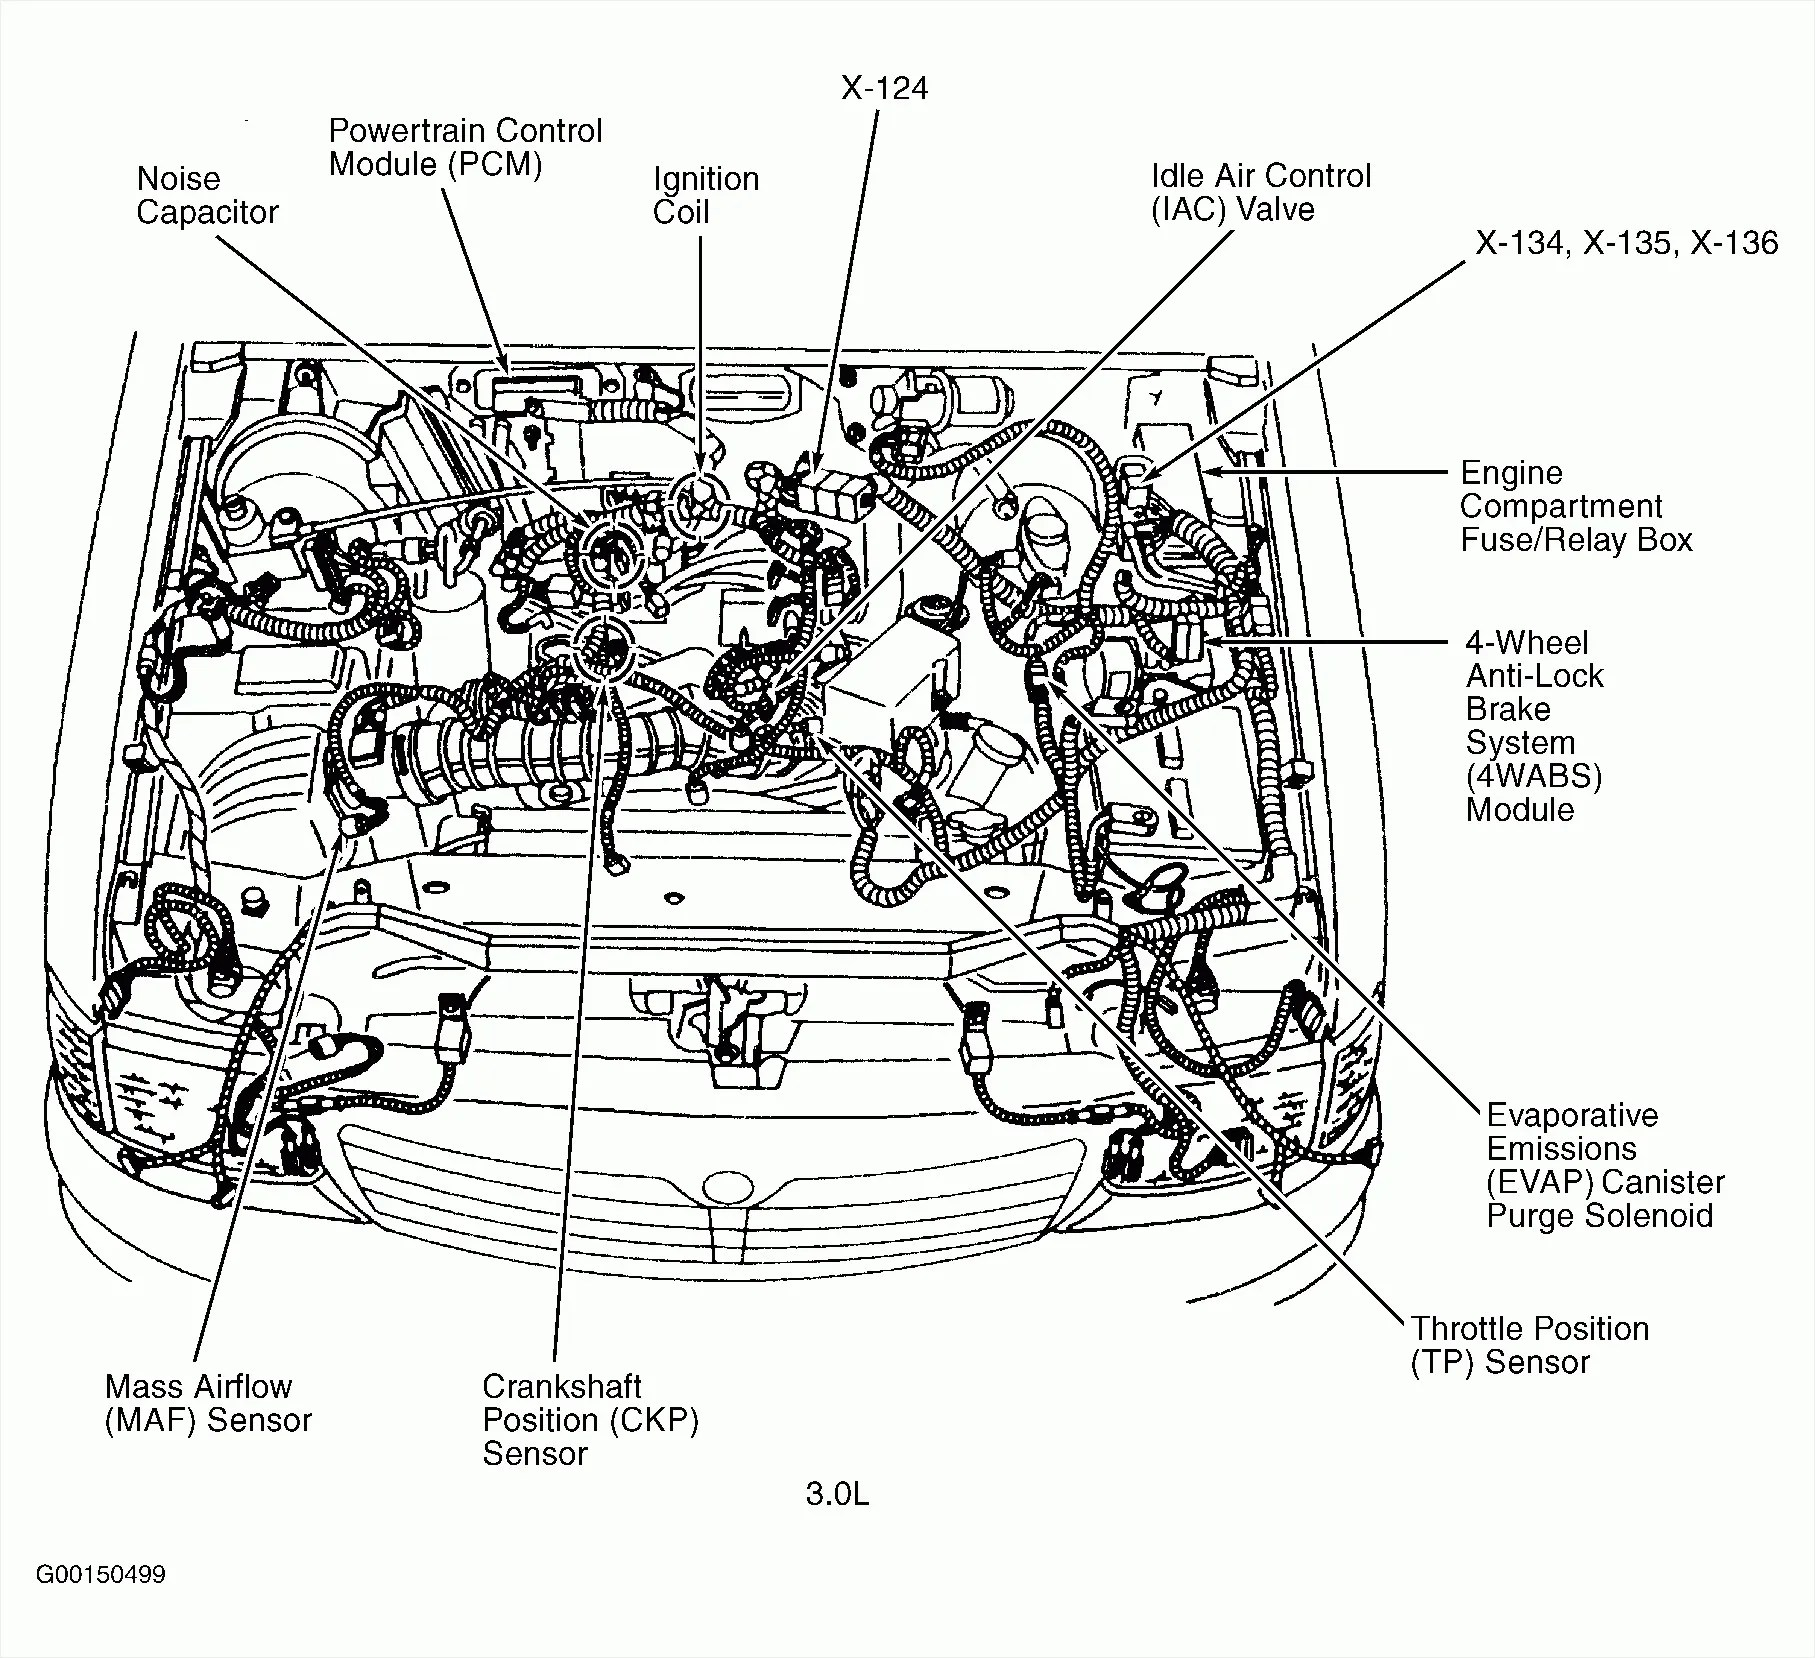 hight resolution of 2003 toyota tundra engine compartment diagram wiring diagrams for 2003 tacoma engine diagram